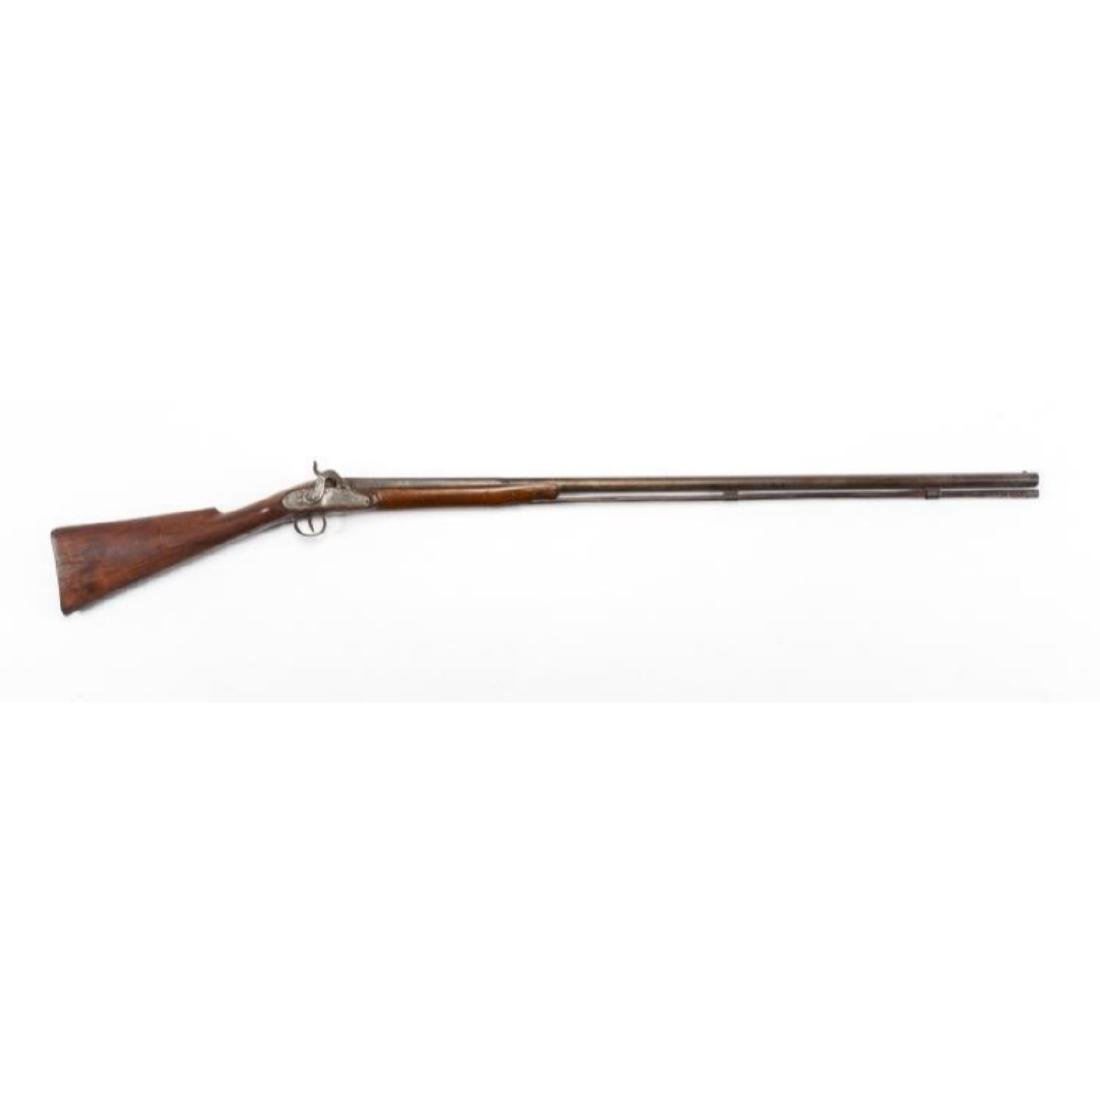 19th C Belgian Percussion Musket - 2